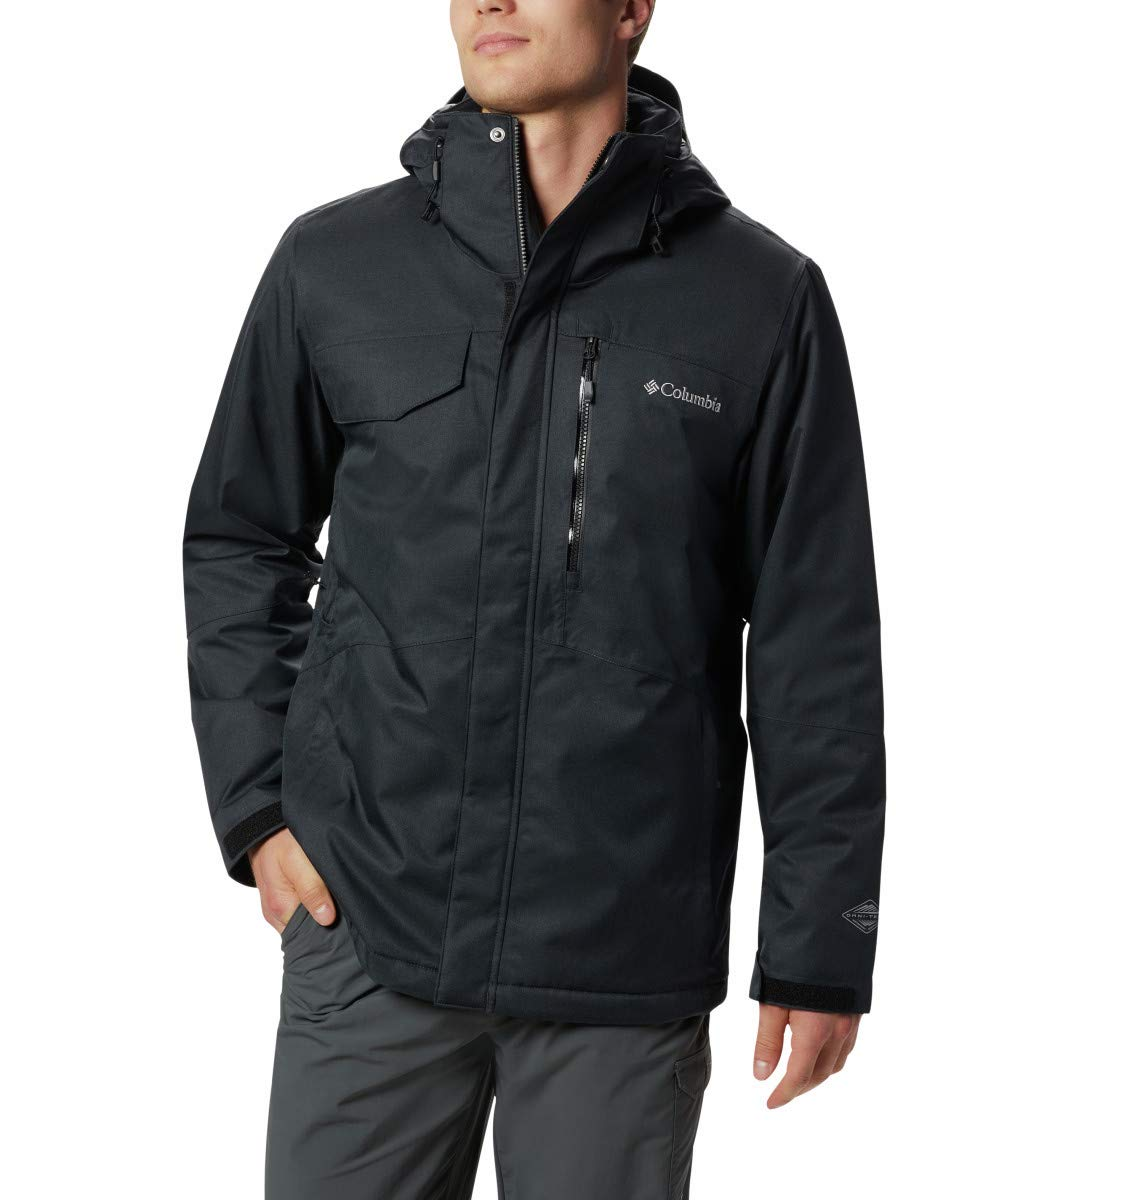 Columbia Men Winter Jacket Cushhomme Crest charcoal heather XL